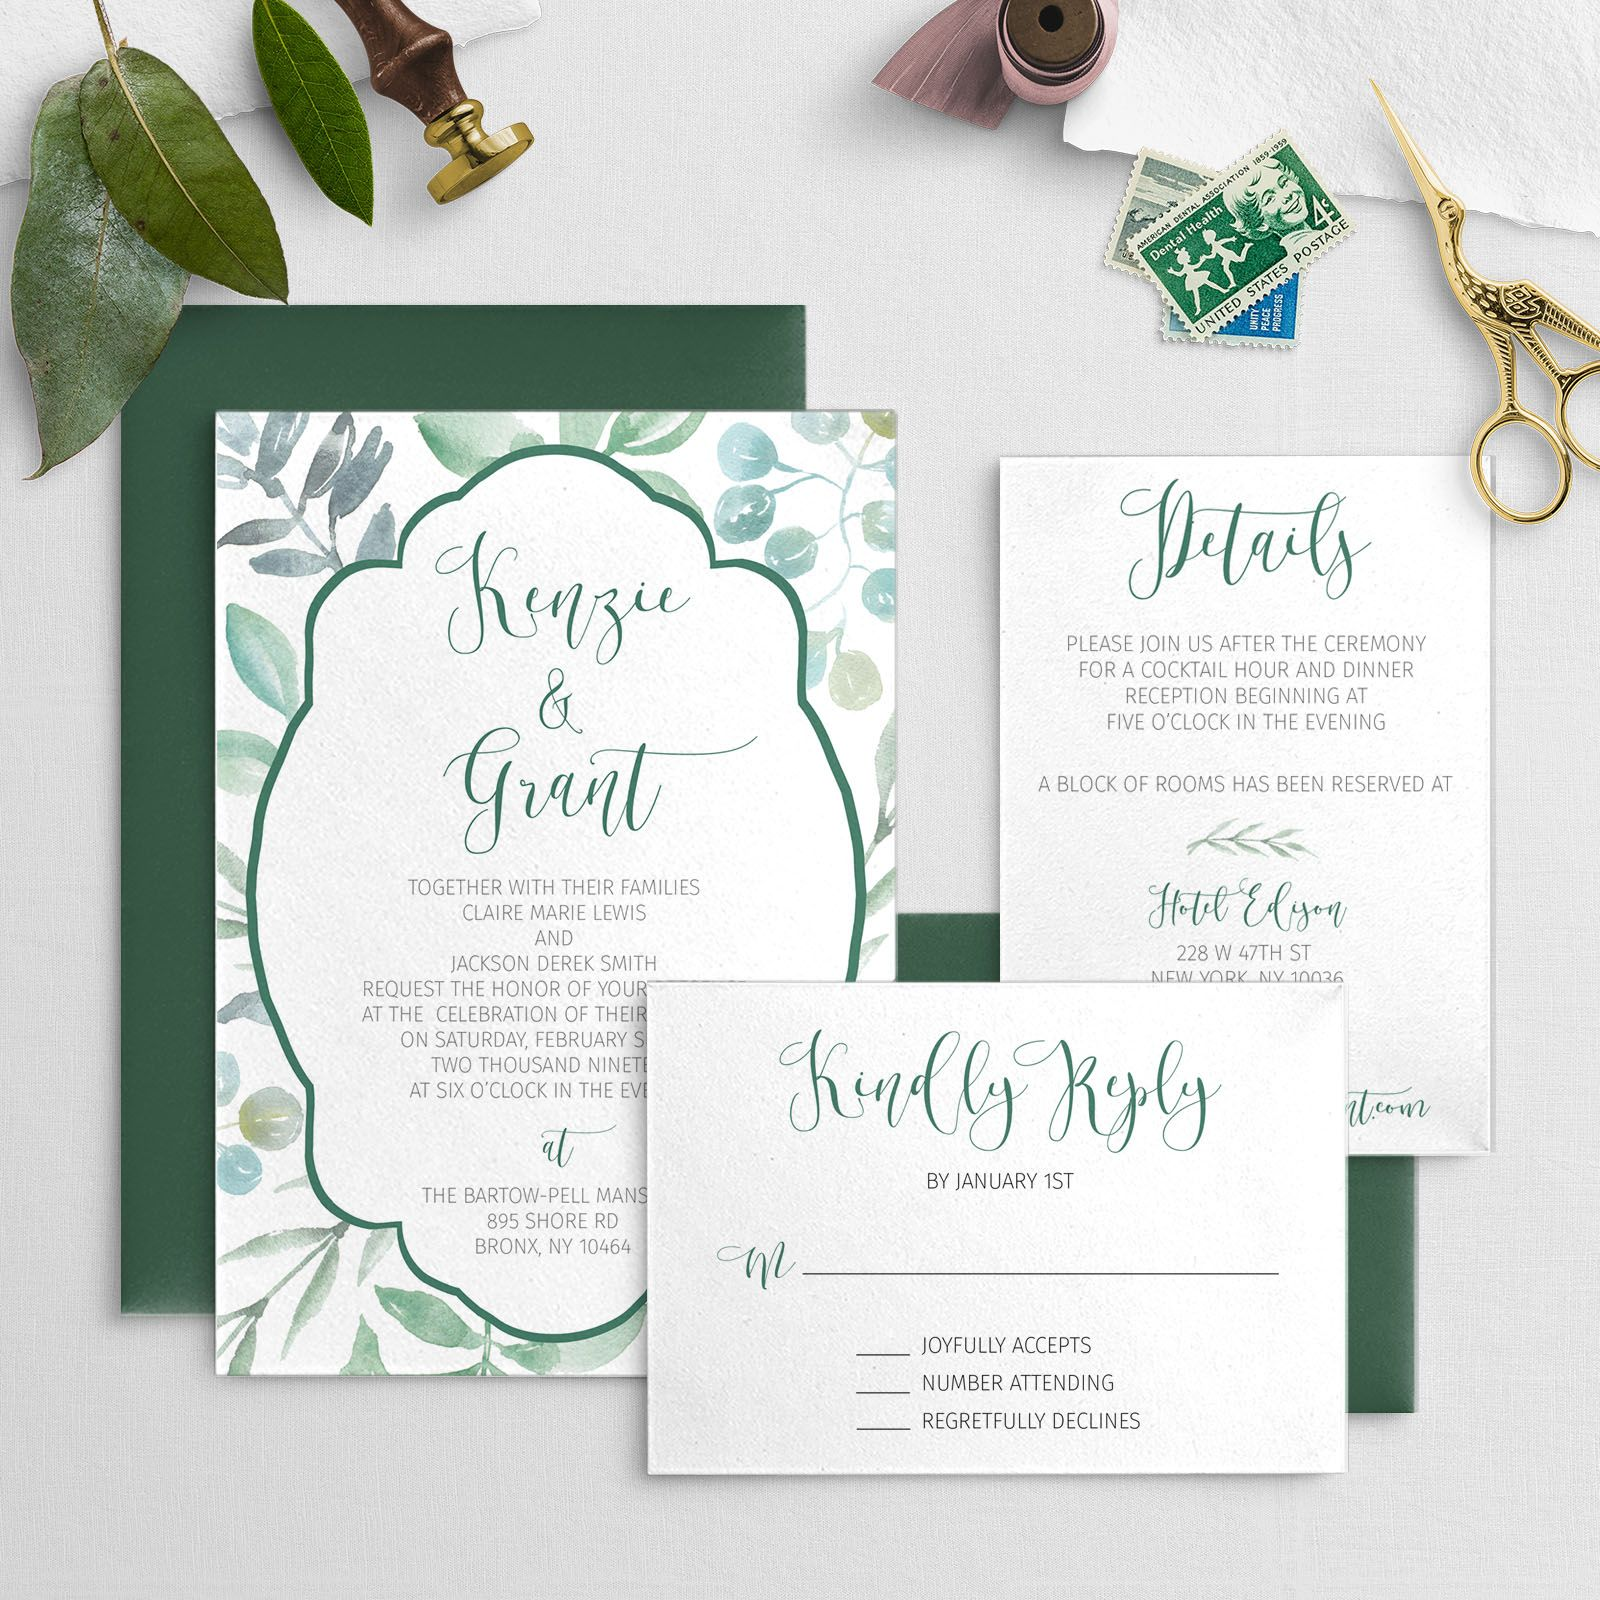 Greenery With Ornate Frame Wedding Invitation Digital Download